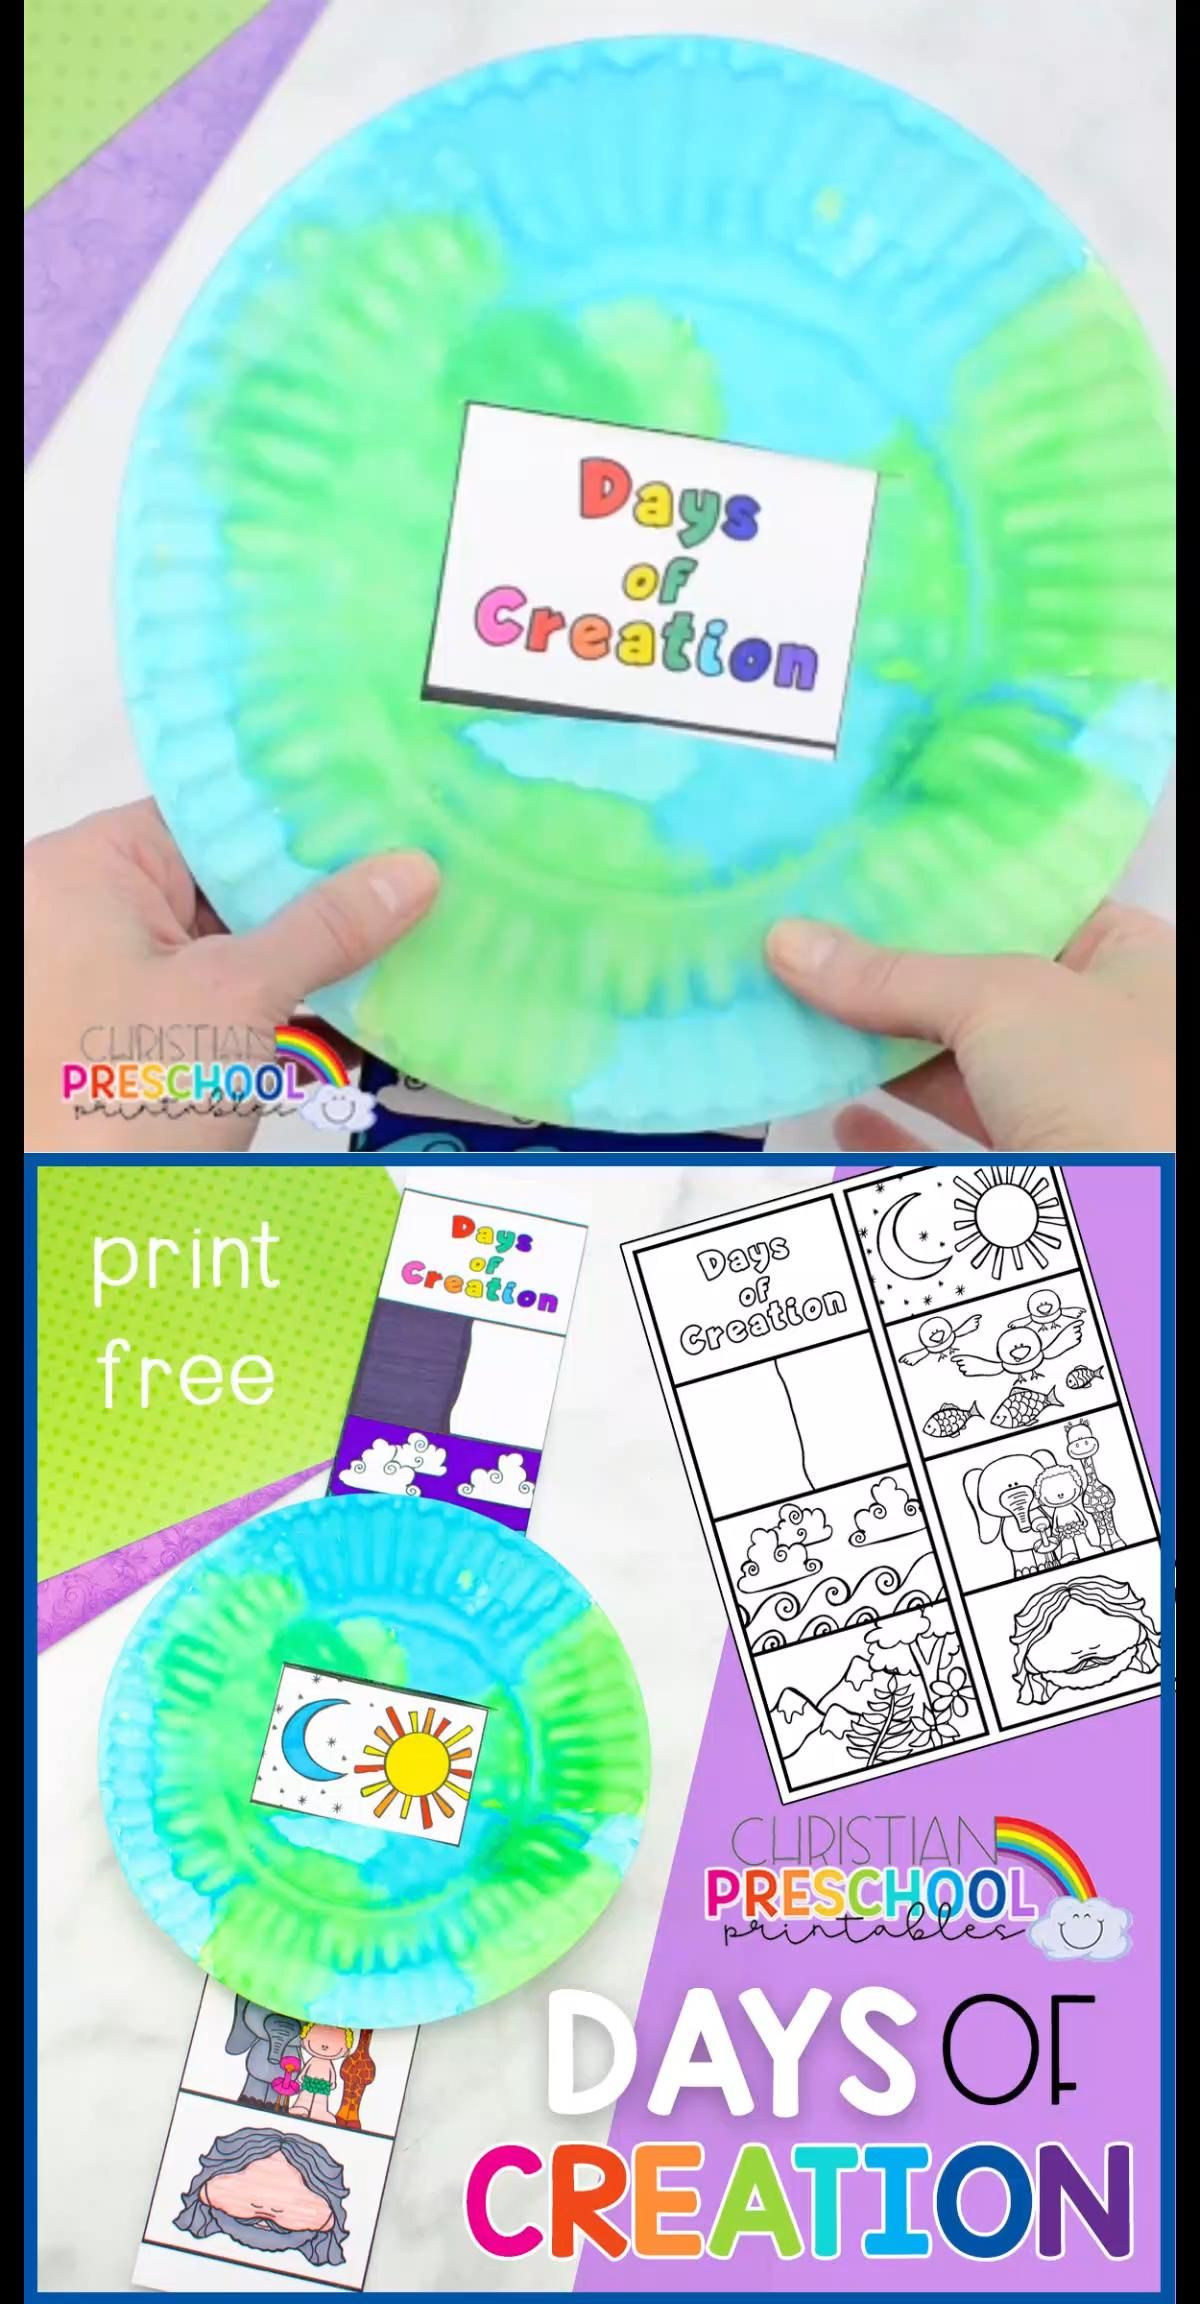 Try this FREE Days of Creation Bible Craft for Kids! Great for Preschool, Sunday School, Children's Ministry, Homeschool and more. Learn the days of creation with this simple paper plate craft